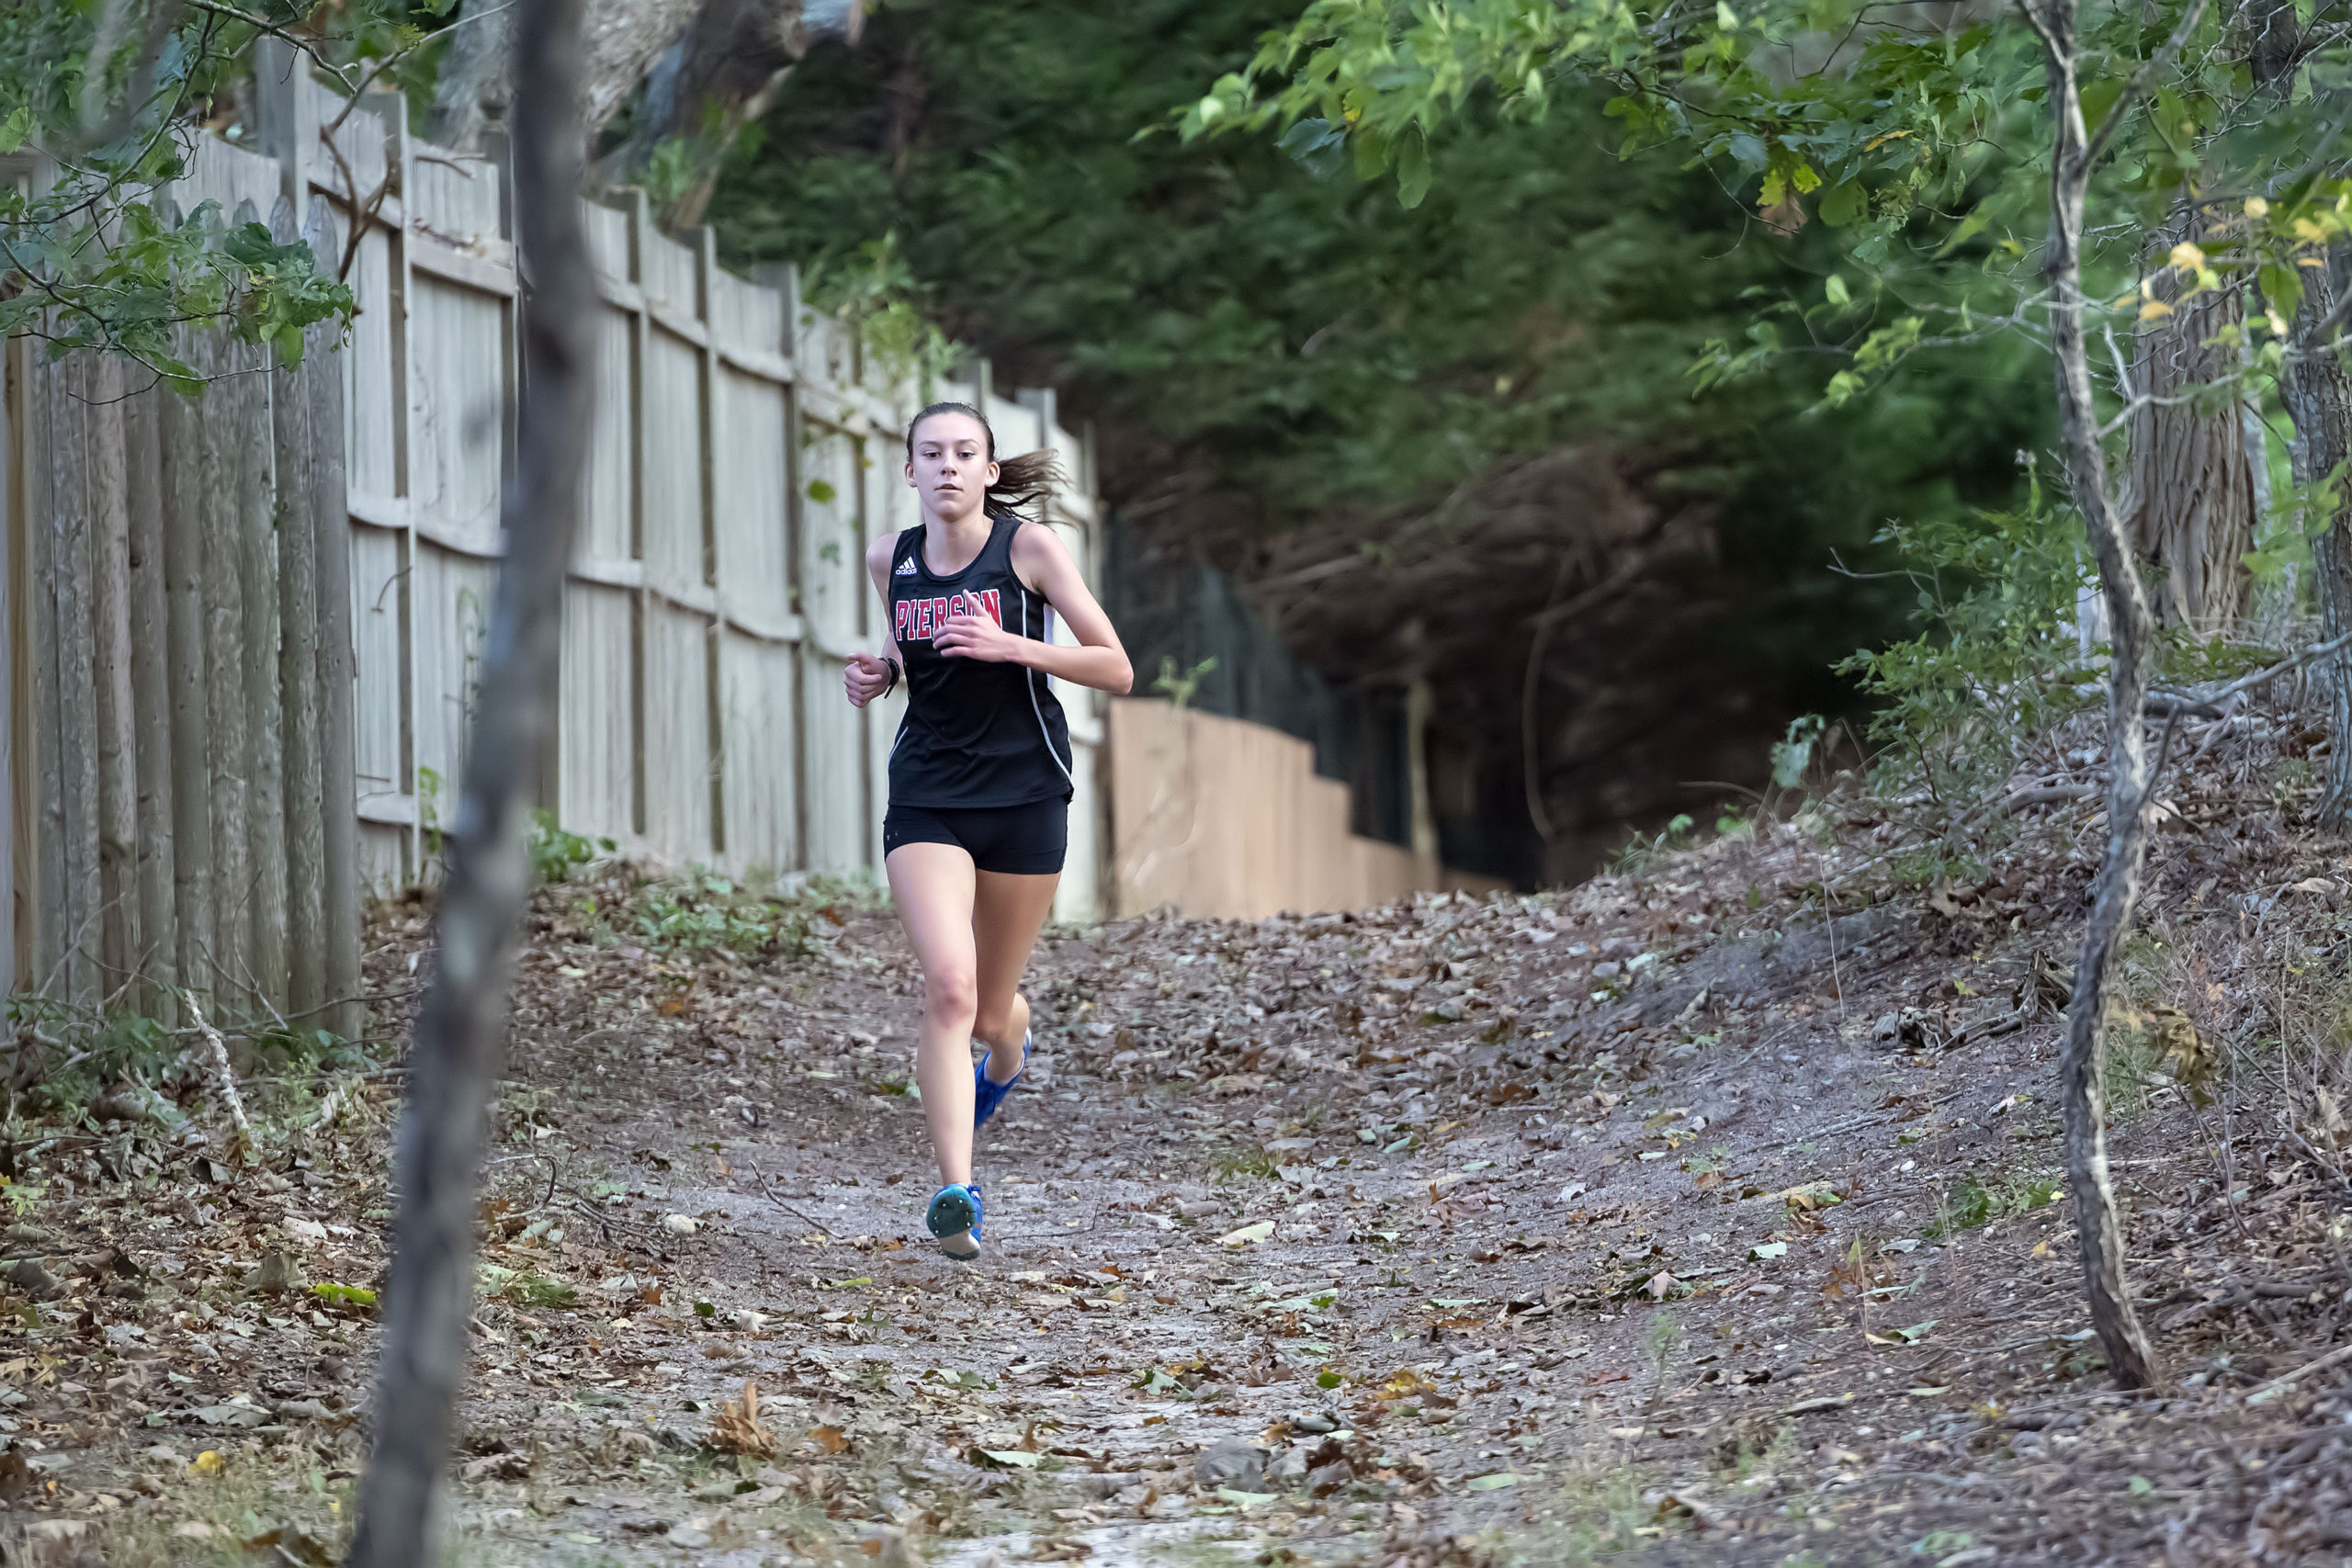 Pierson Cross Country Runner Penelope Greene competes against the Ross School at Mashashimuet Park on Monday afternoon.   MICHAEL HELLER